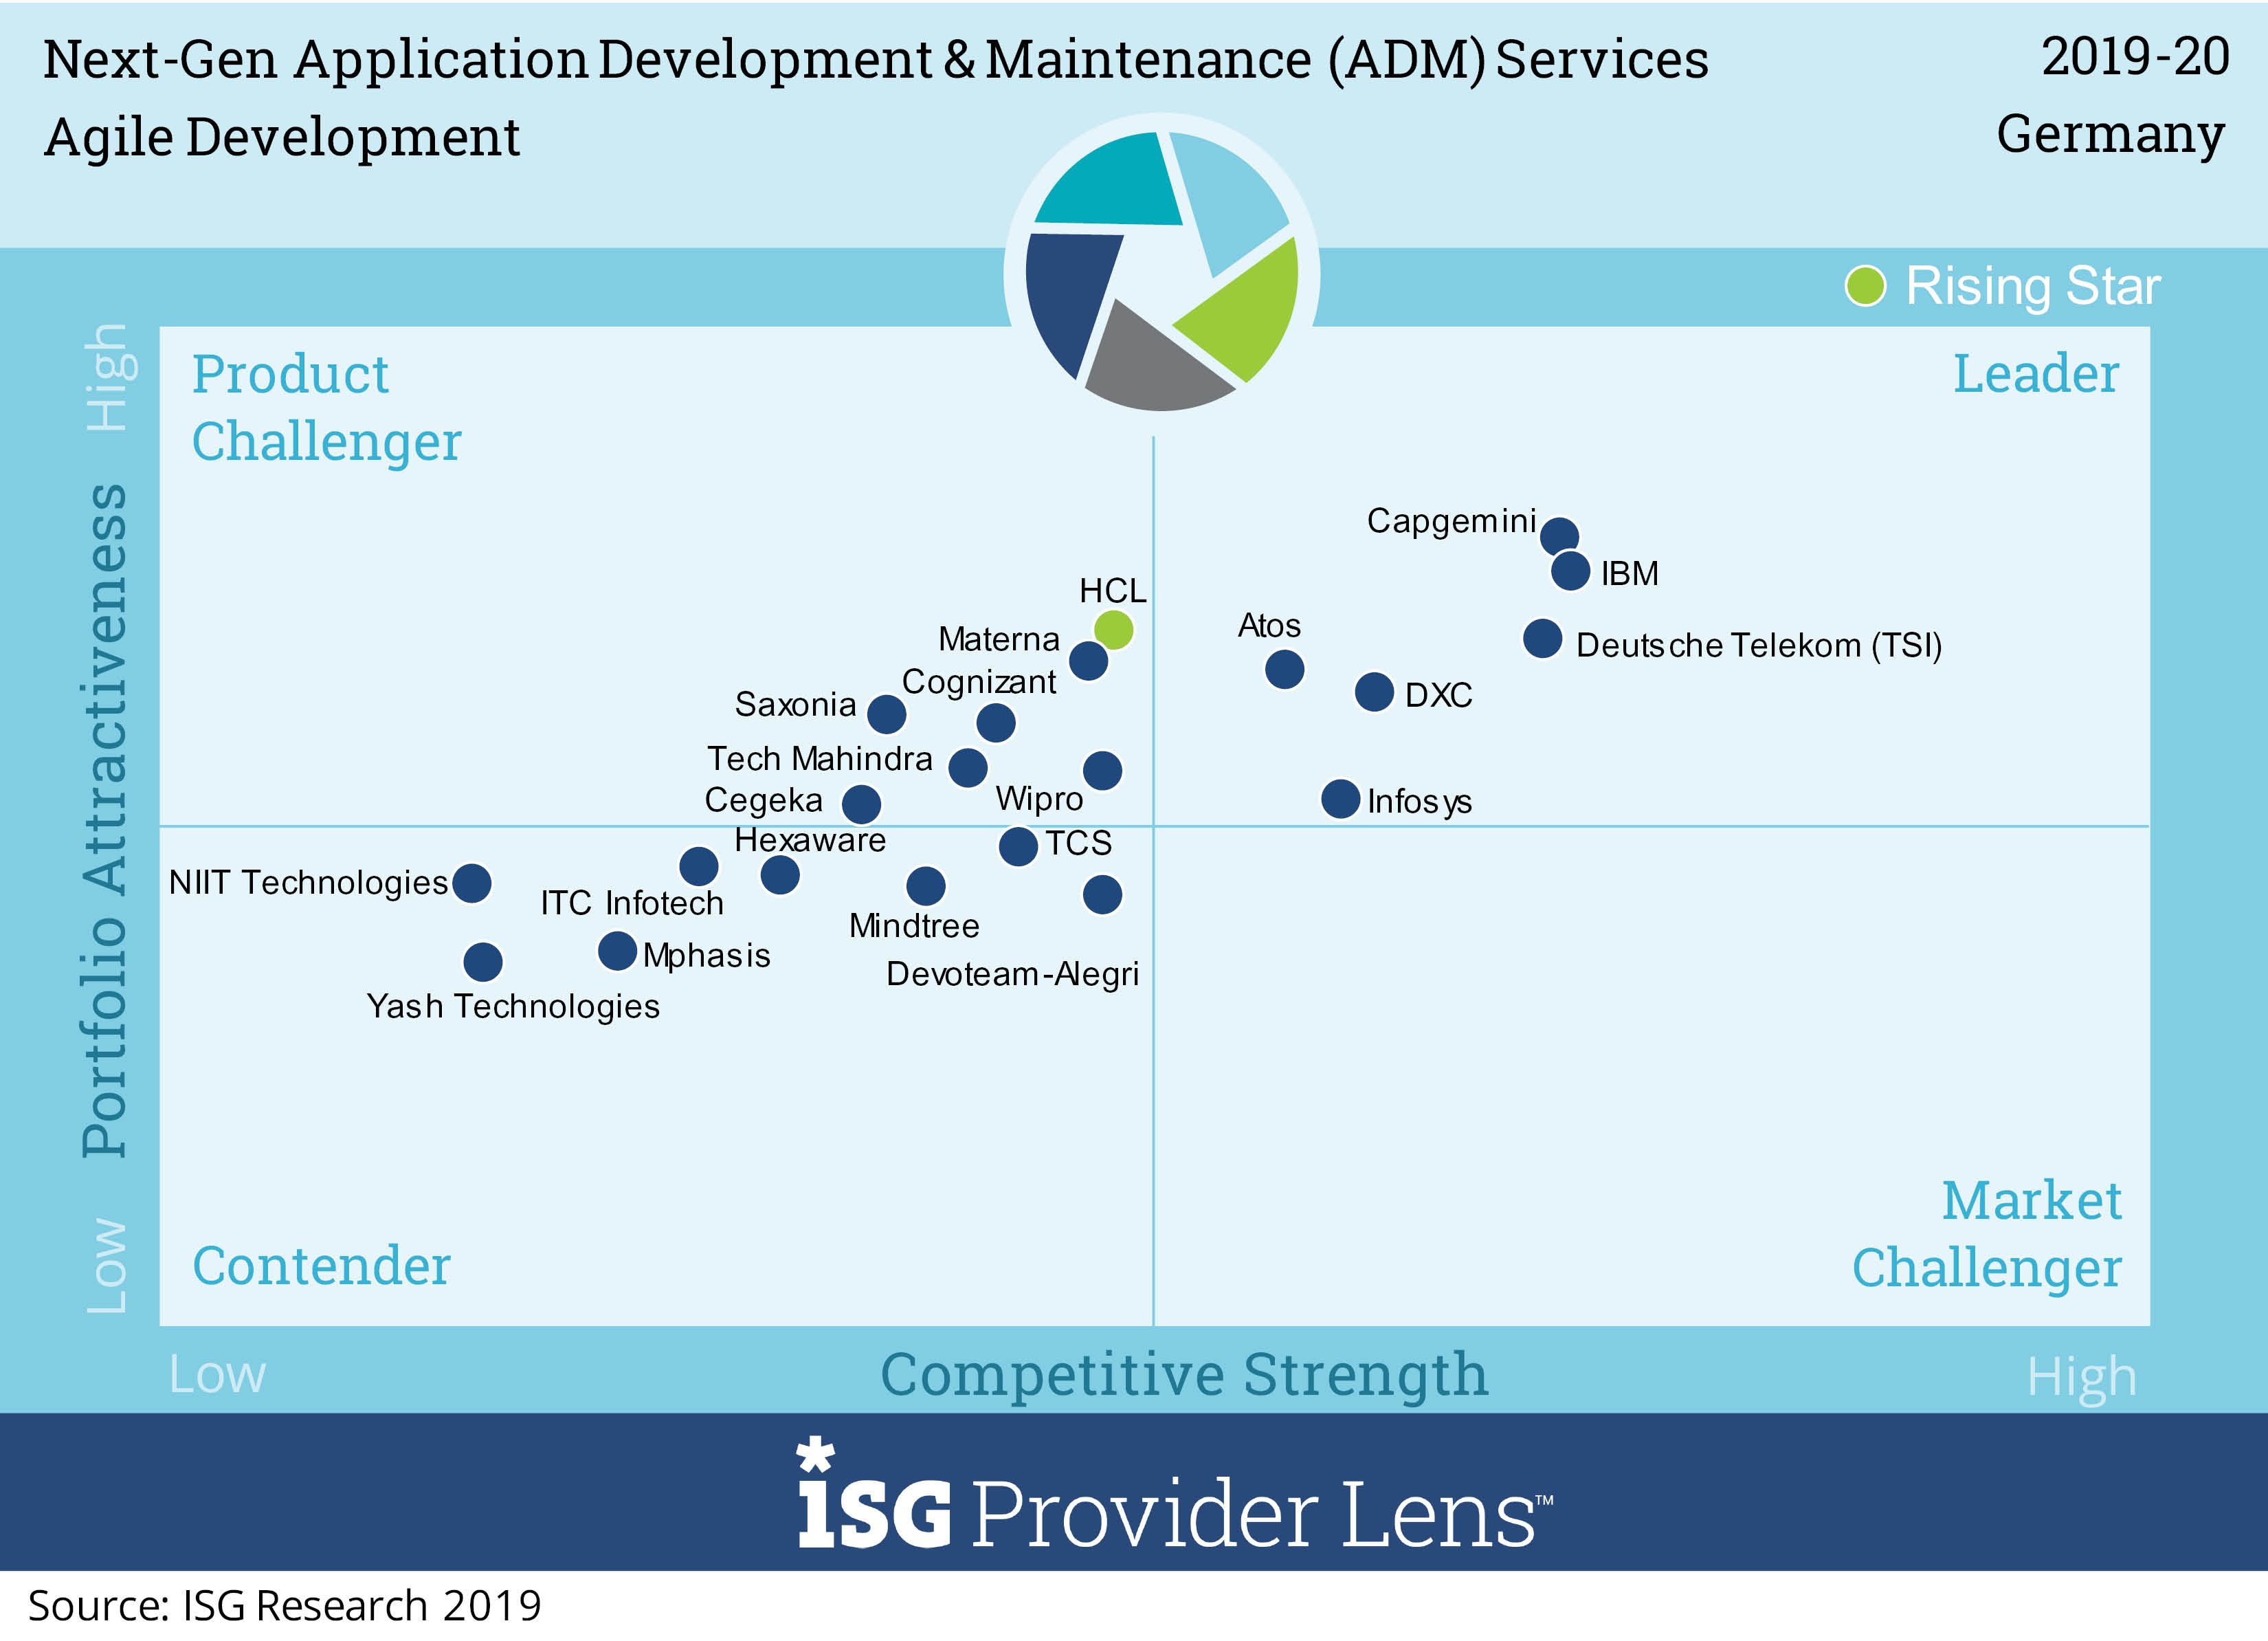 ISG: Agile Development, Capgemini Leader